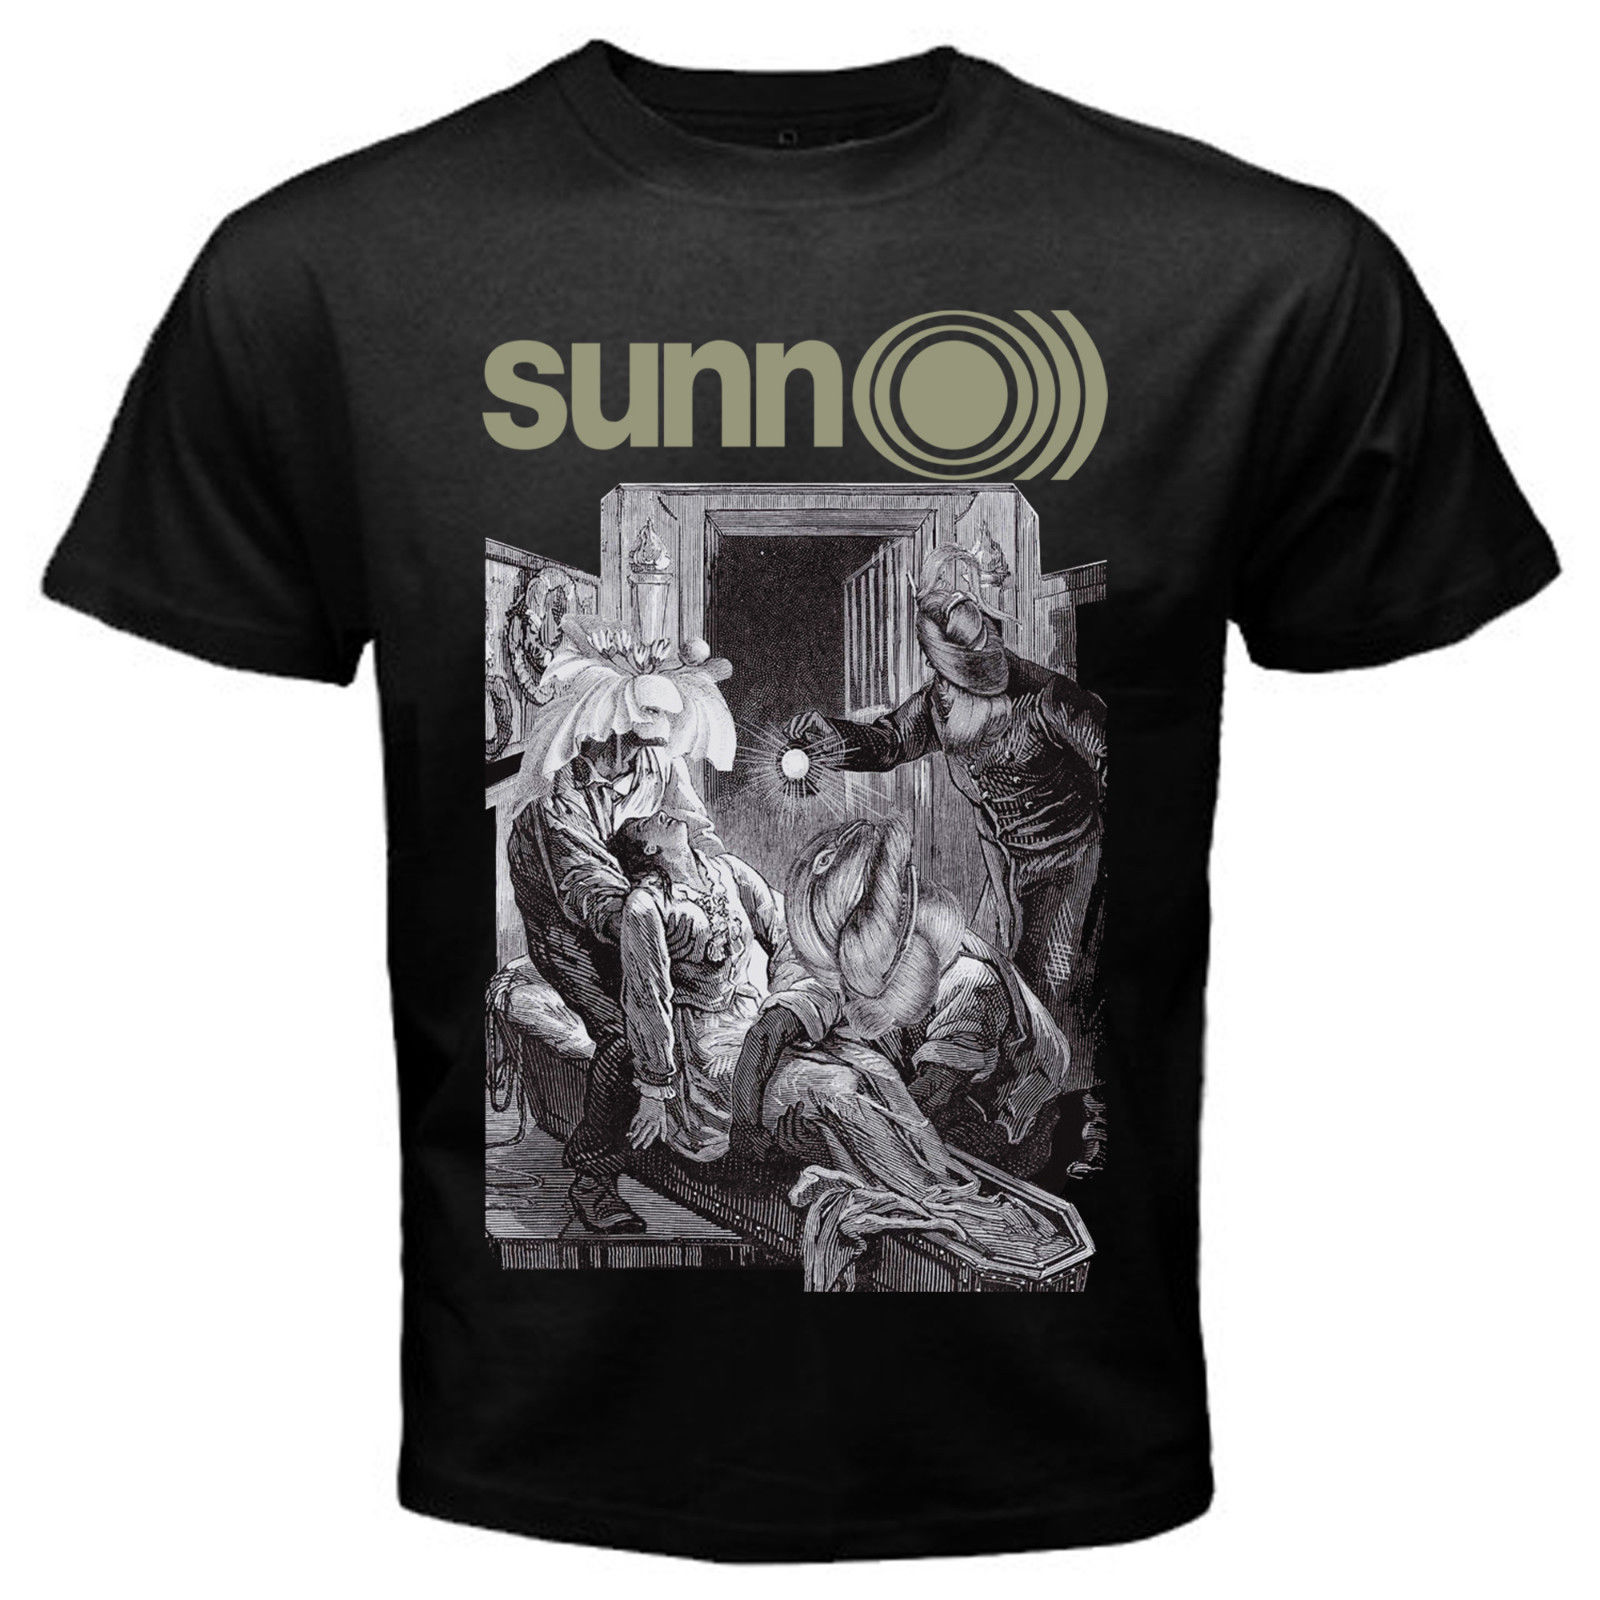 SUNN O T SHIRT METAL BAND Ava Size S 3XL NEW SHIRT BORIS ULVER New Metal Short Sleeve Casual T Shirt Top Tee Plus Size in T Shirts from Men 39 s Clothing